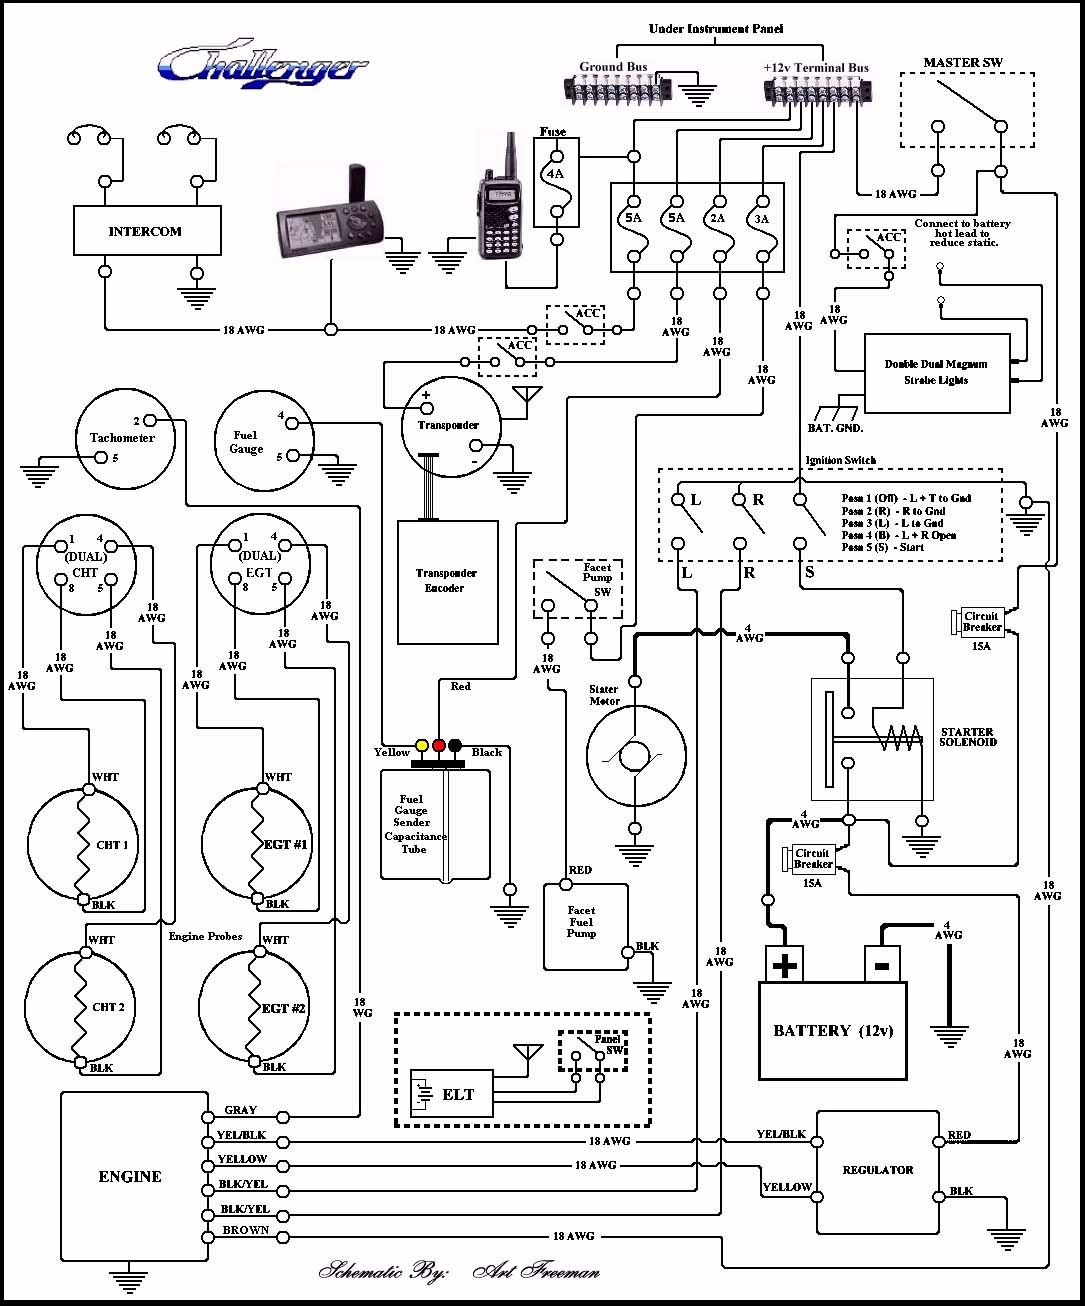 wiring schematic electric plane